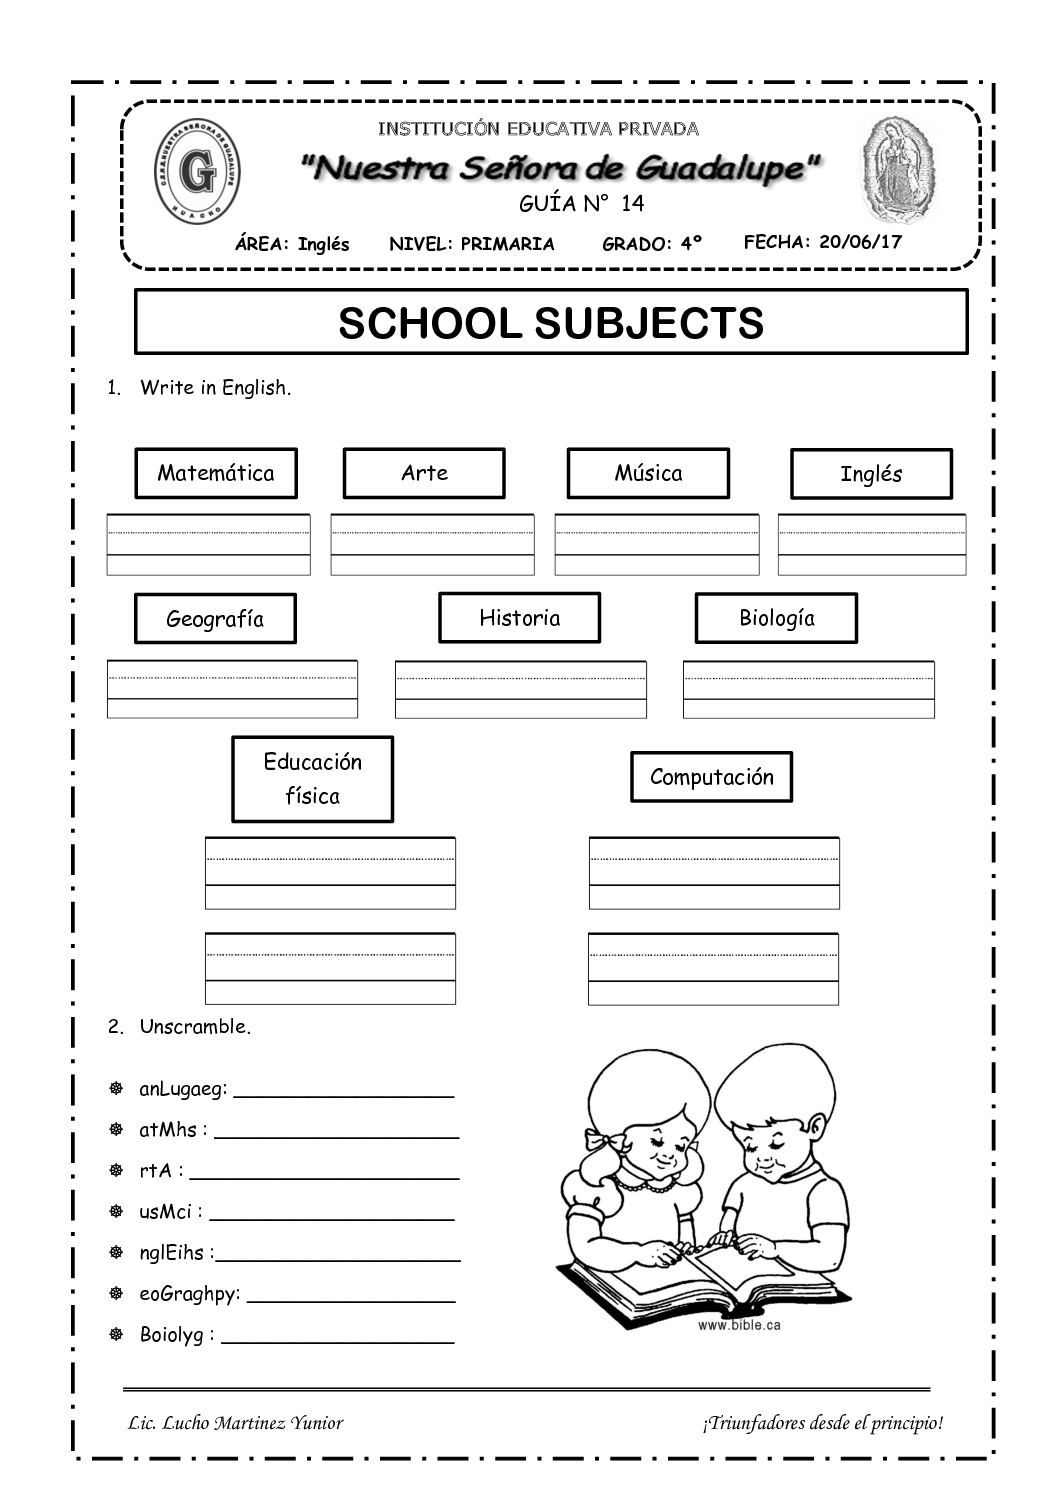 School Subjects 4to